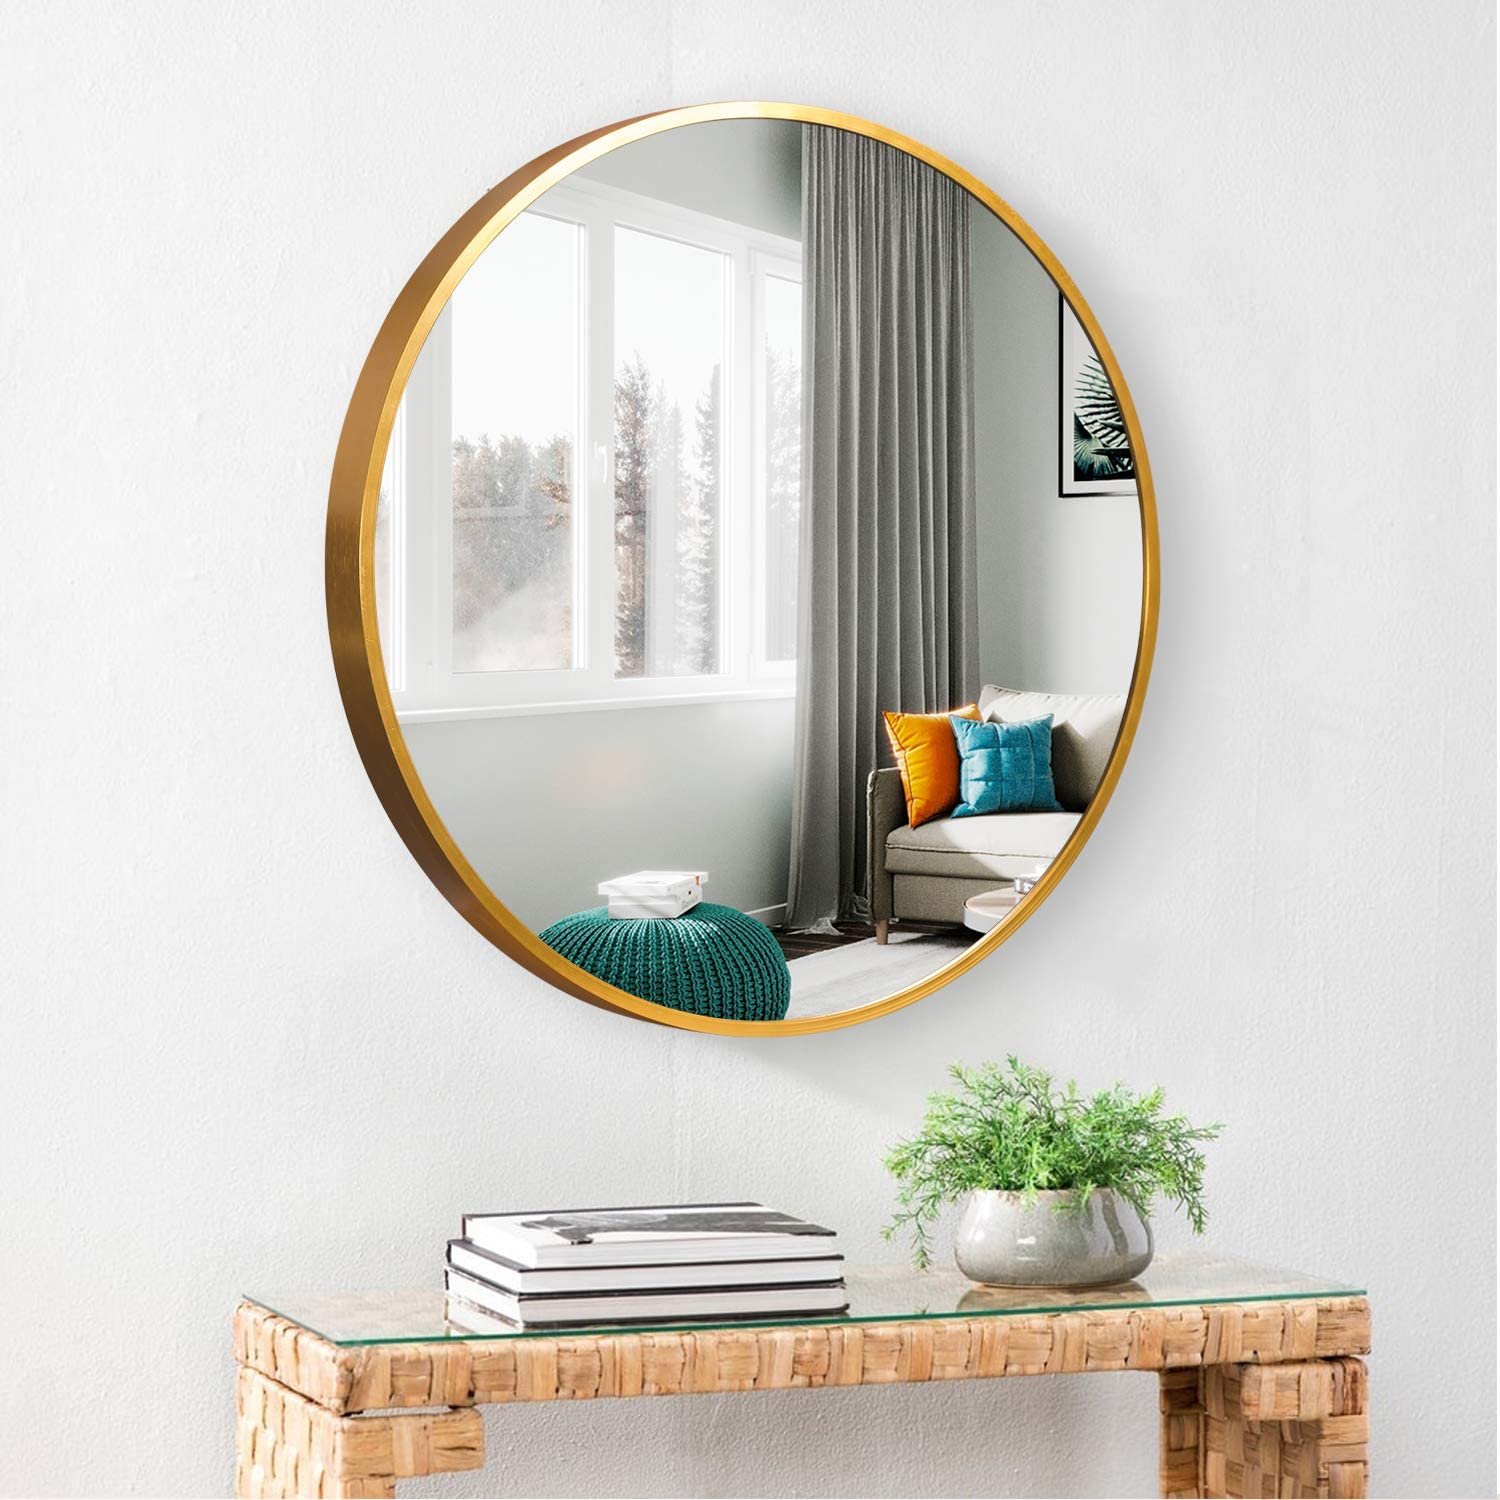 Amazon Com Round Mirrors Wall Decor Circle Mirror Bathroom Wall Mounted Make Up Mirror Bedroom Living Room Dining Room Entry Furniture Decor